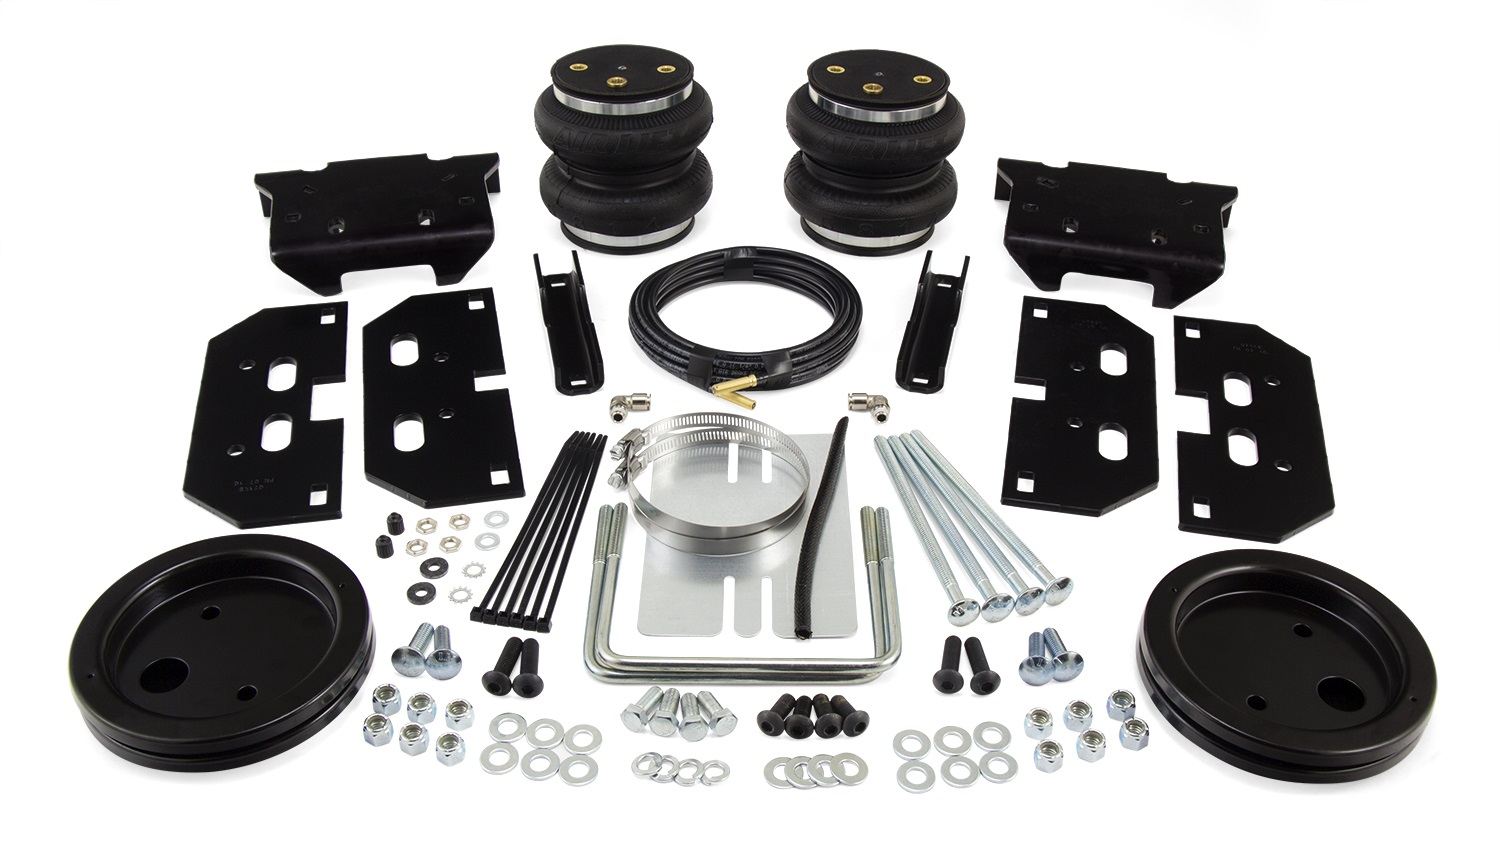 LoadLifter 5000 Ultimate Air Spring Kit, Rear, Adjustable, With Internal Jounce Bumper, 2 Hr Install, Safely Run w/Zero Air Pressure